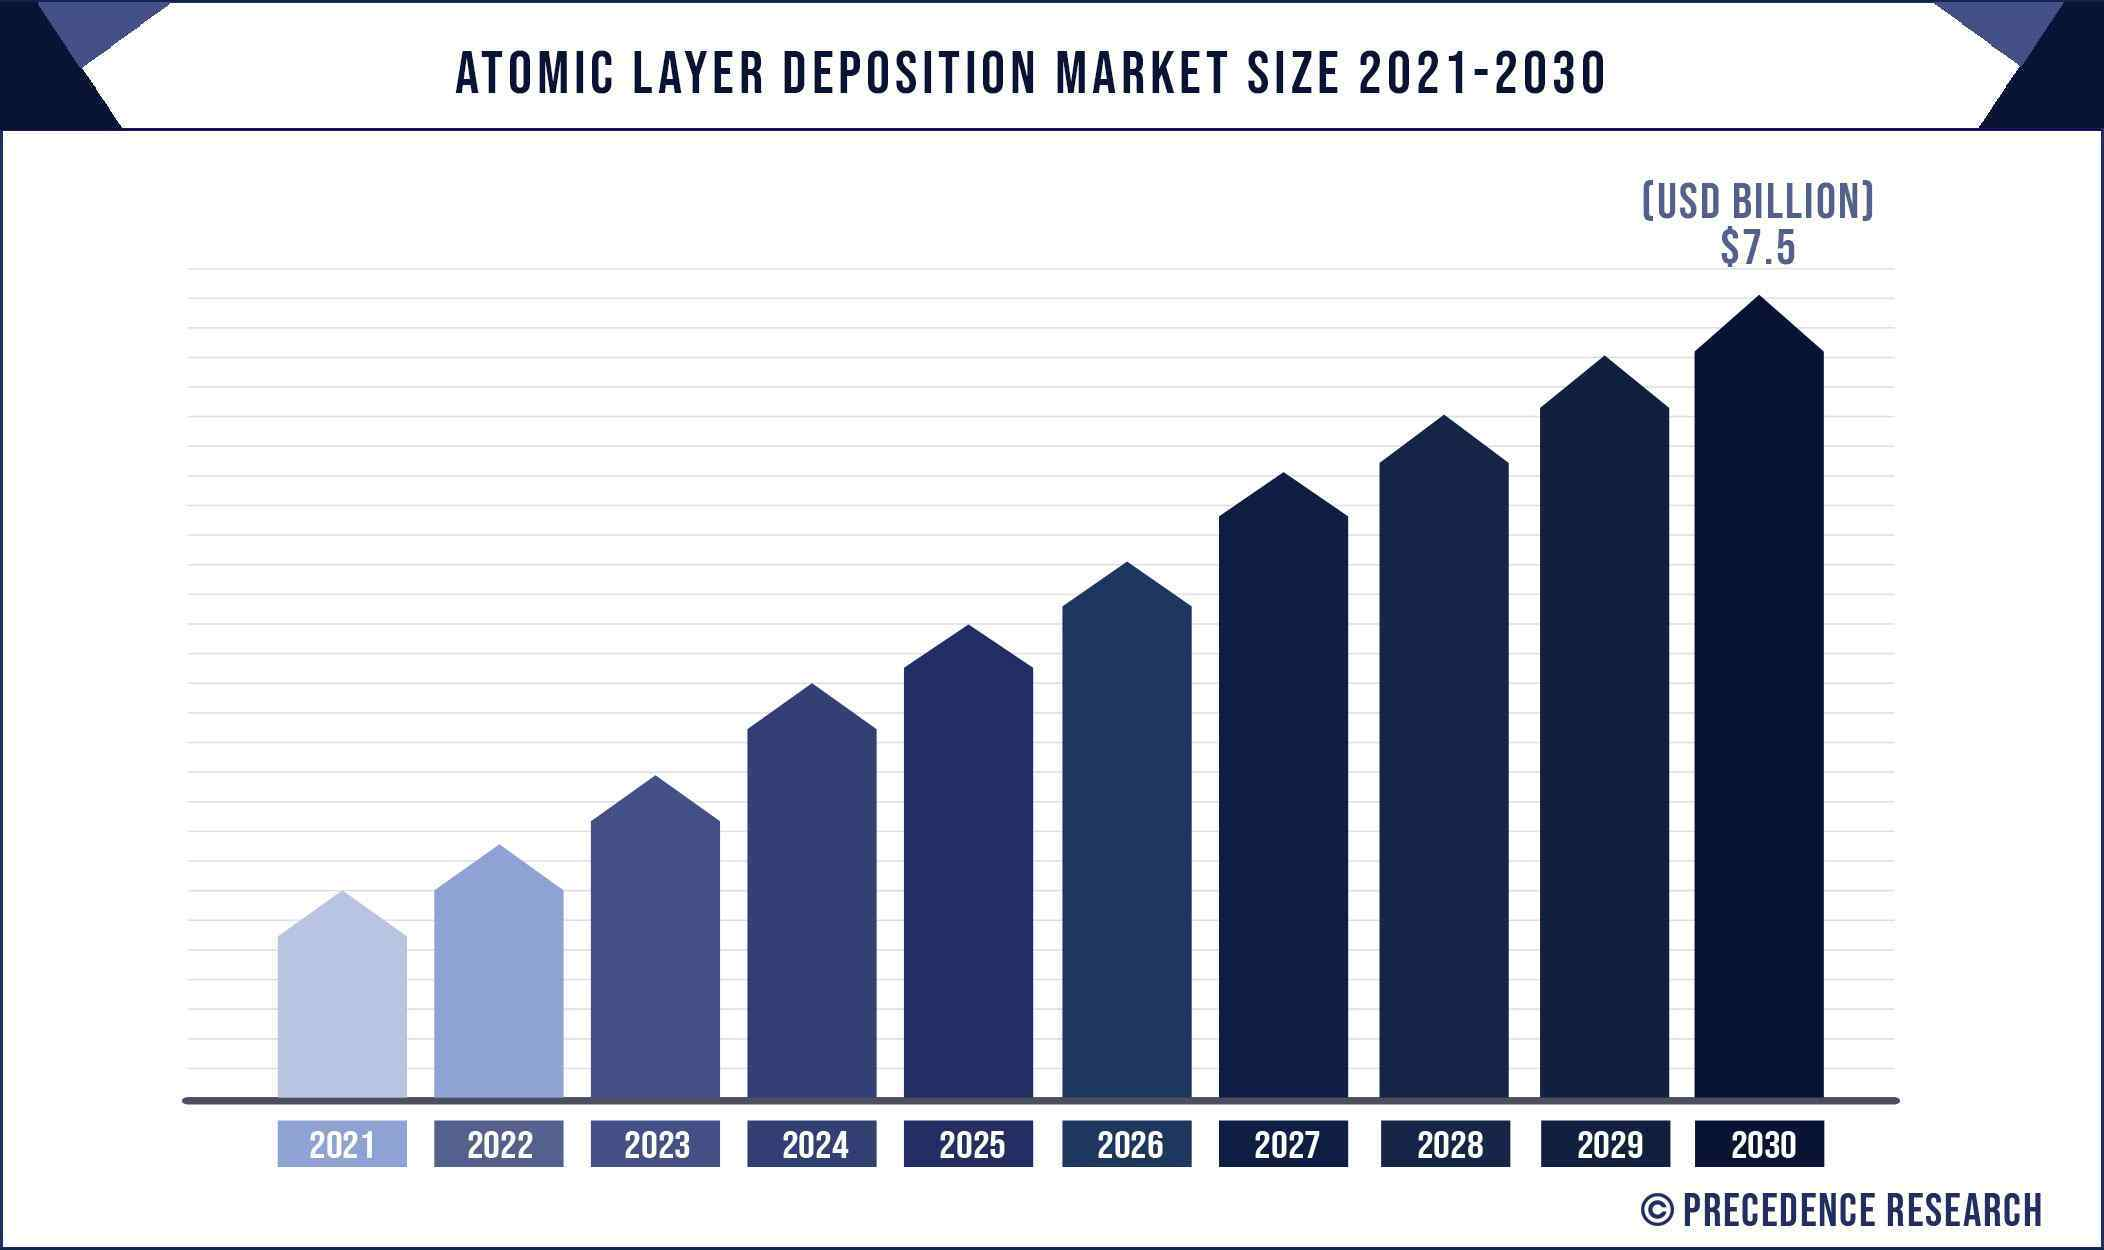 Atomic Layer Deposition Market Size 2021 to 2030